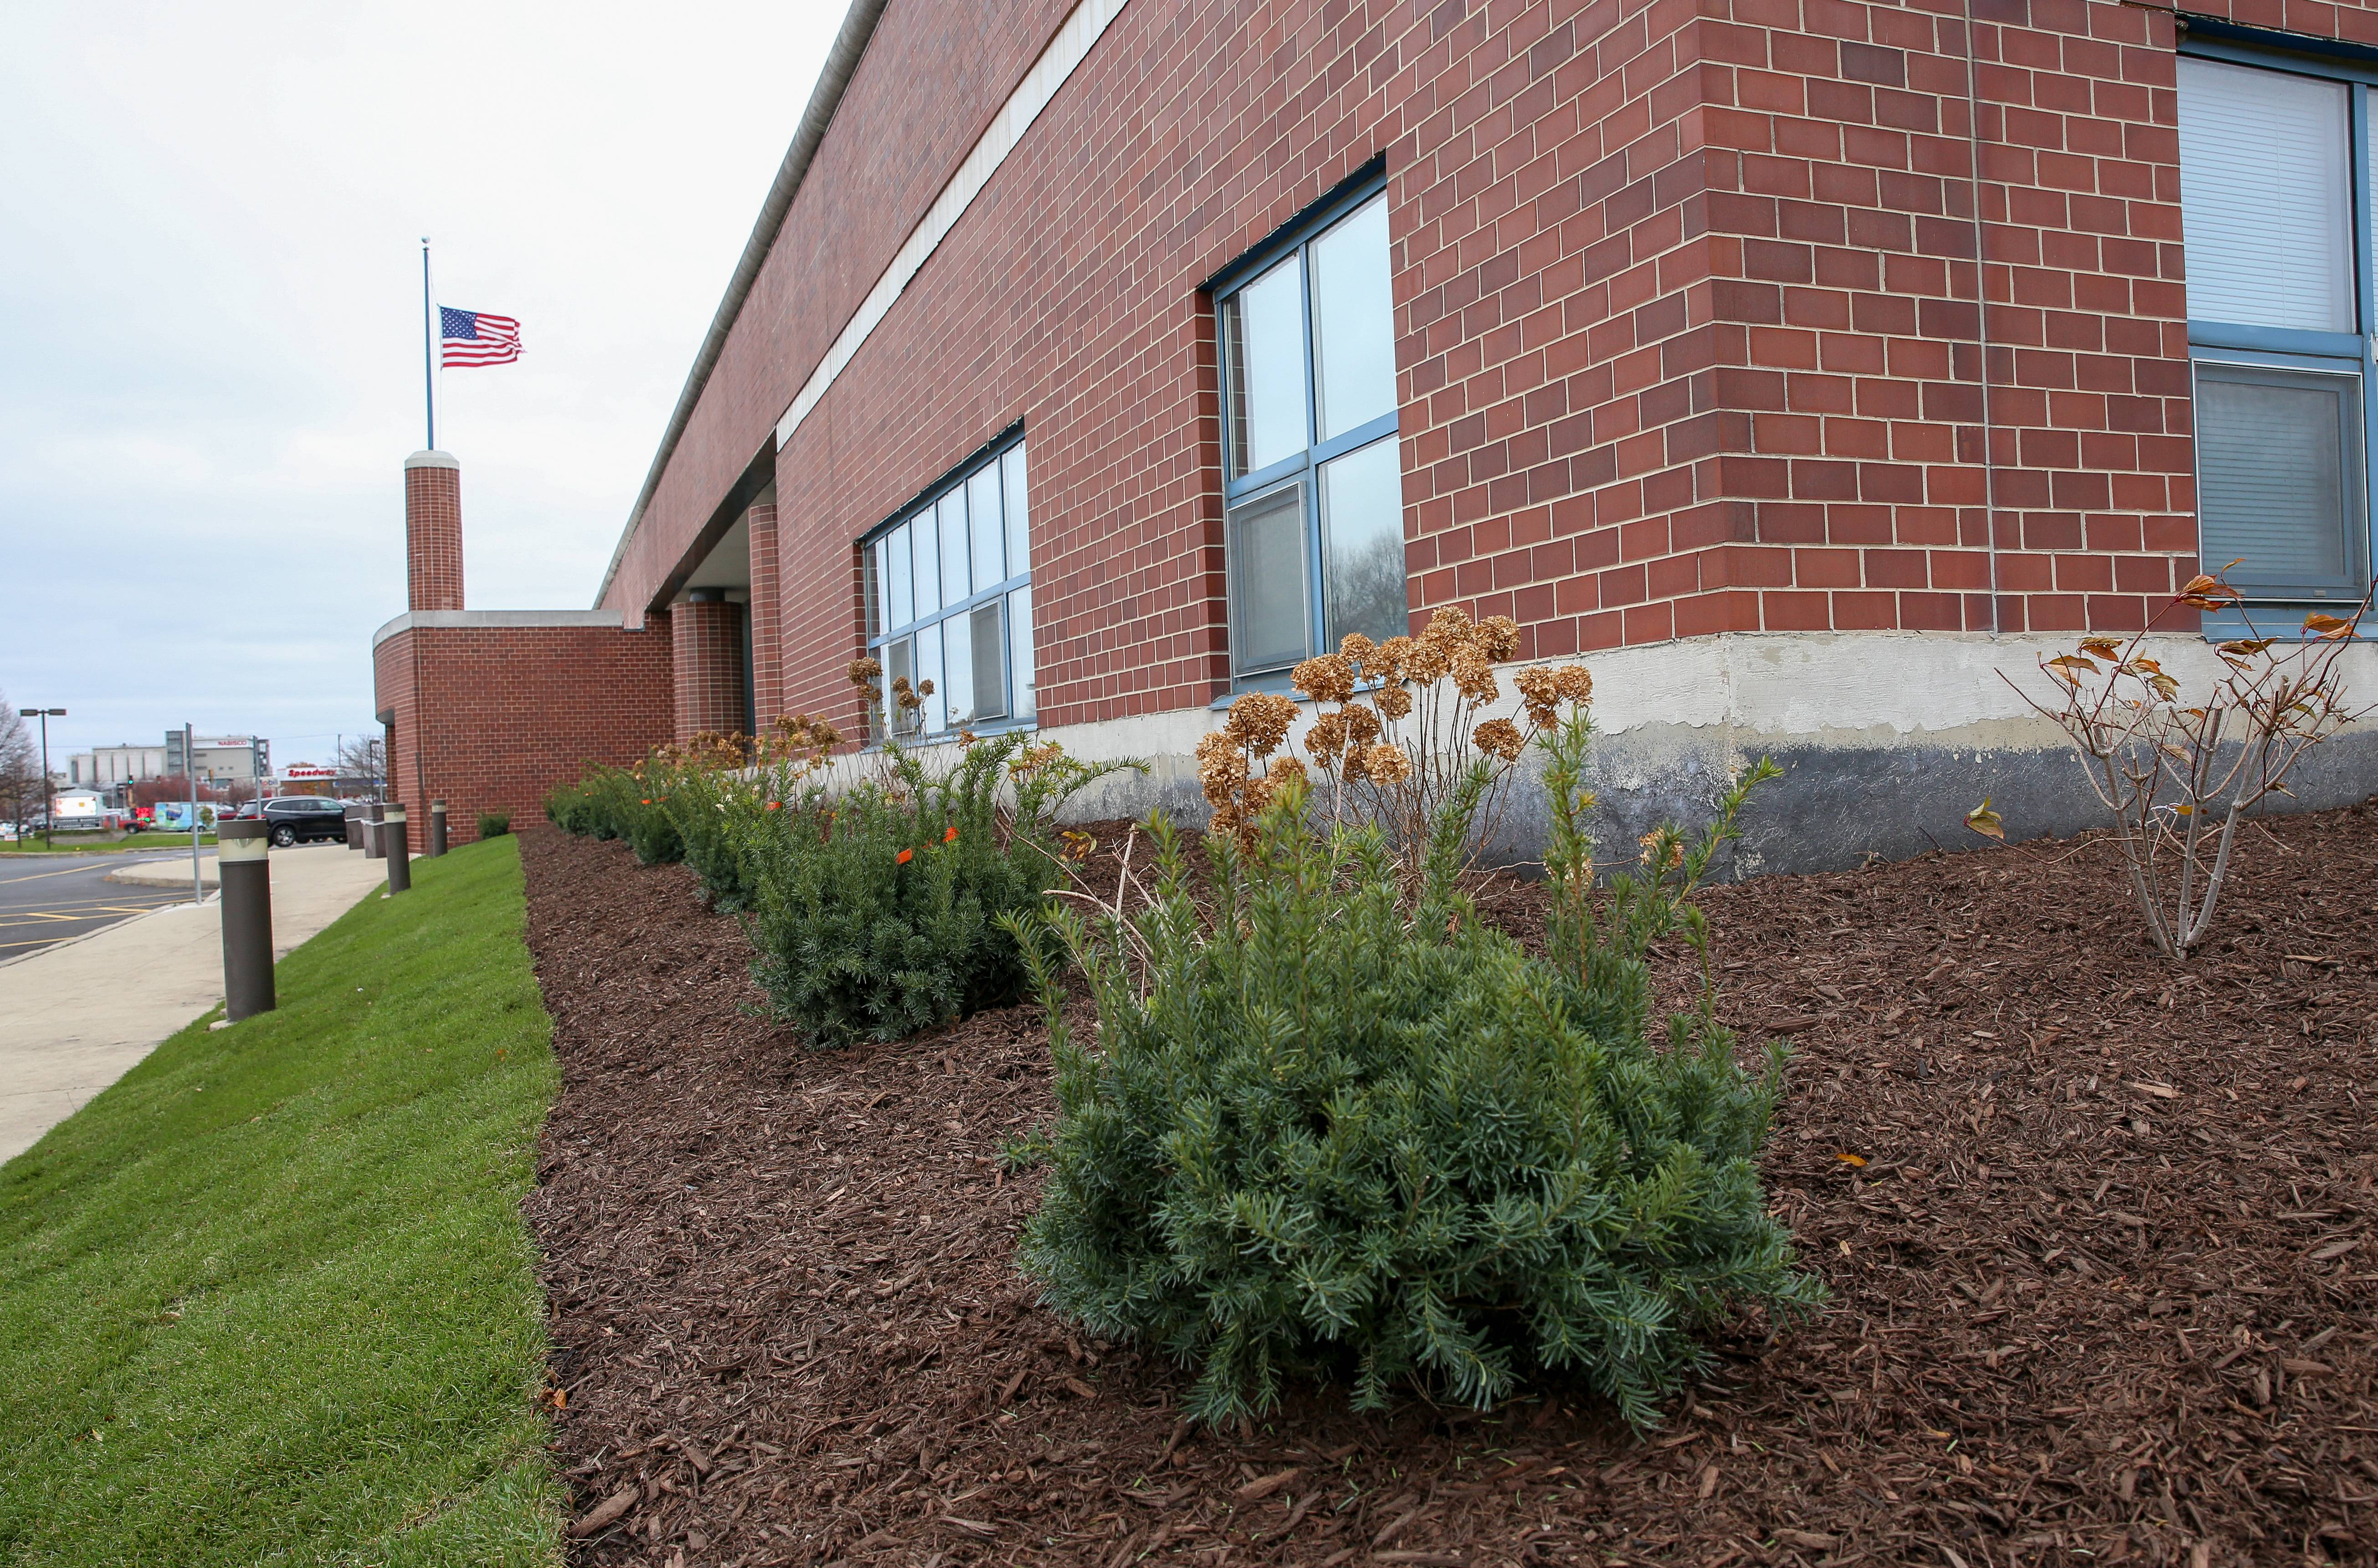 The U.S. Postal Service Has Installed Some New Plantings In The Place Of A  Former Pollinator